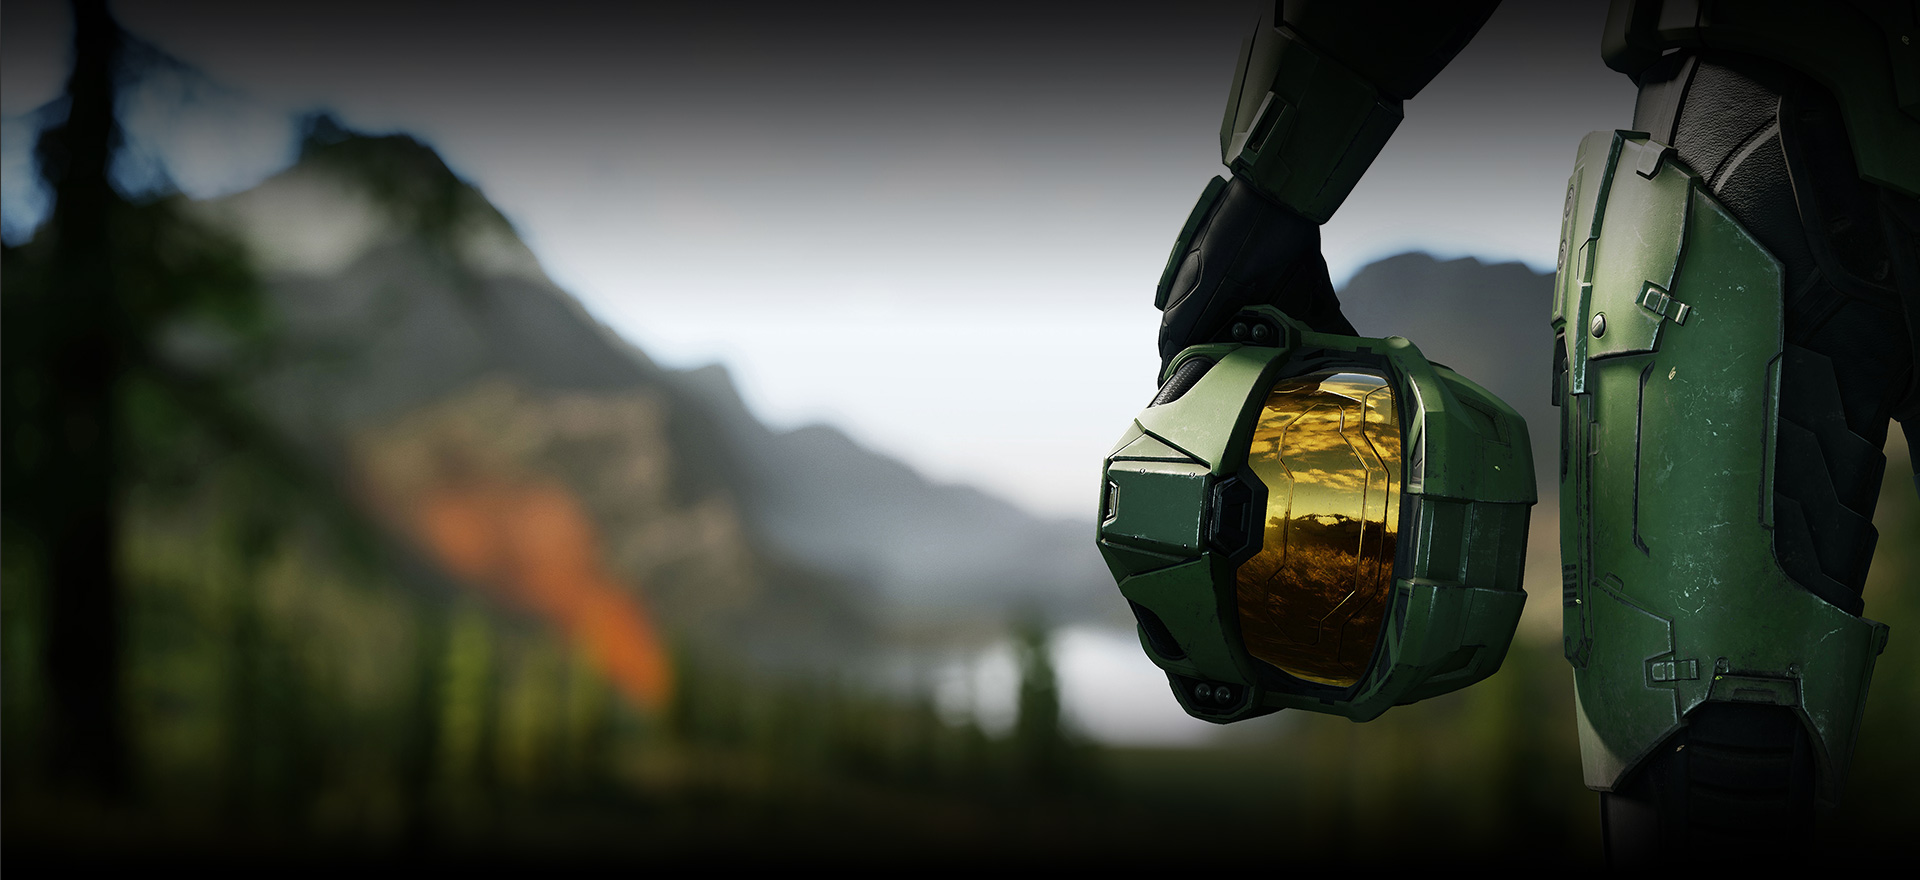 Halo Universe: close-up of Master Chief's hand holding his helmet with mountain scene in background.